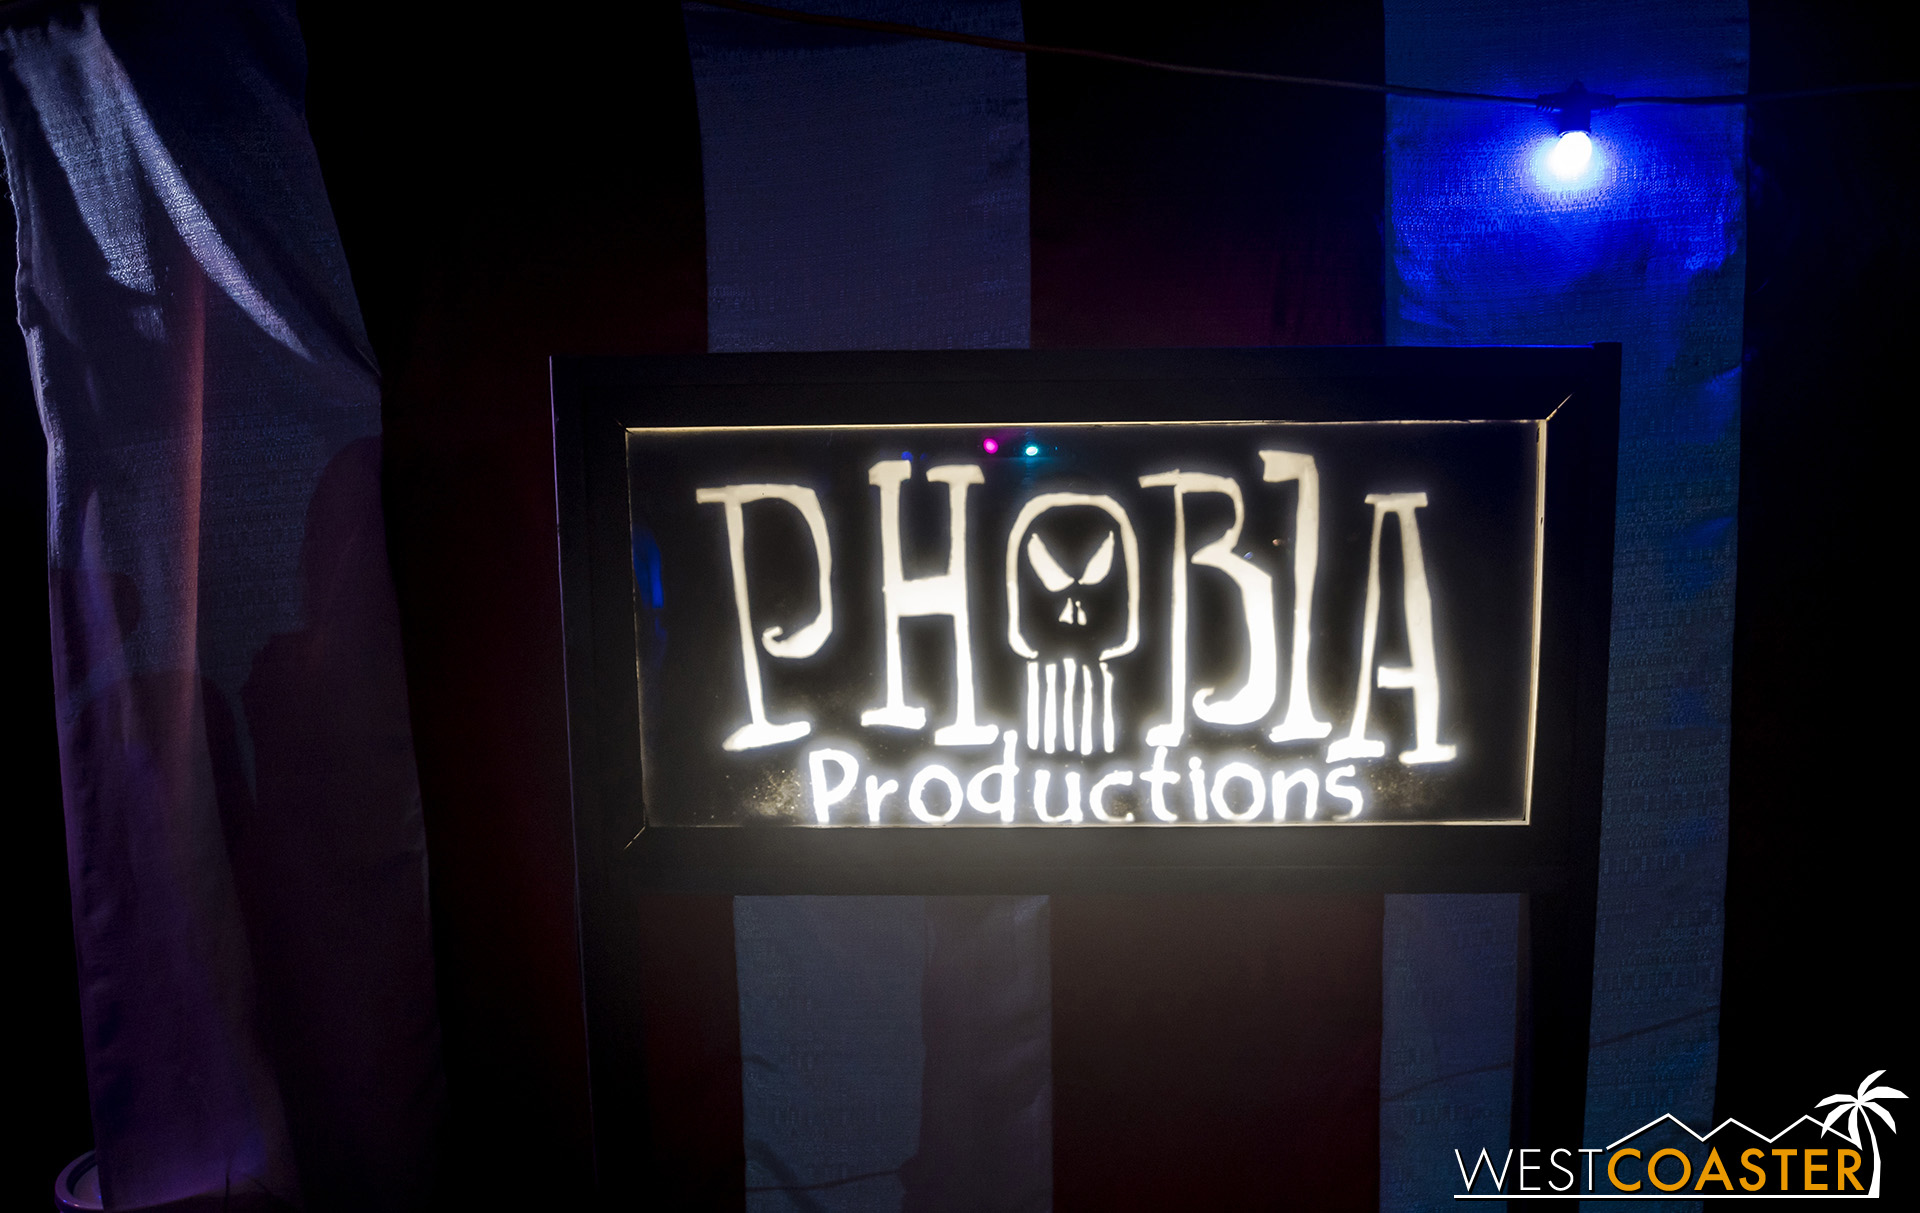 MSS-19_0809-15-PhobiaProductions-DieLaughing-0001.jpg